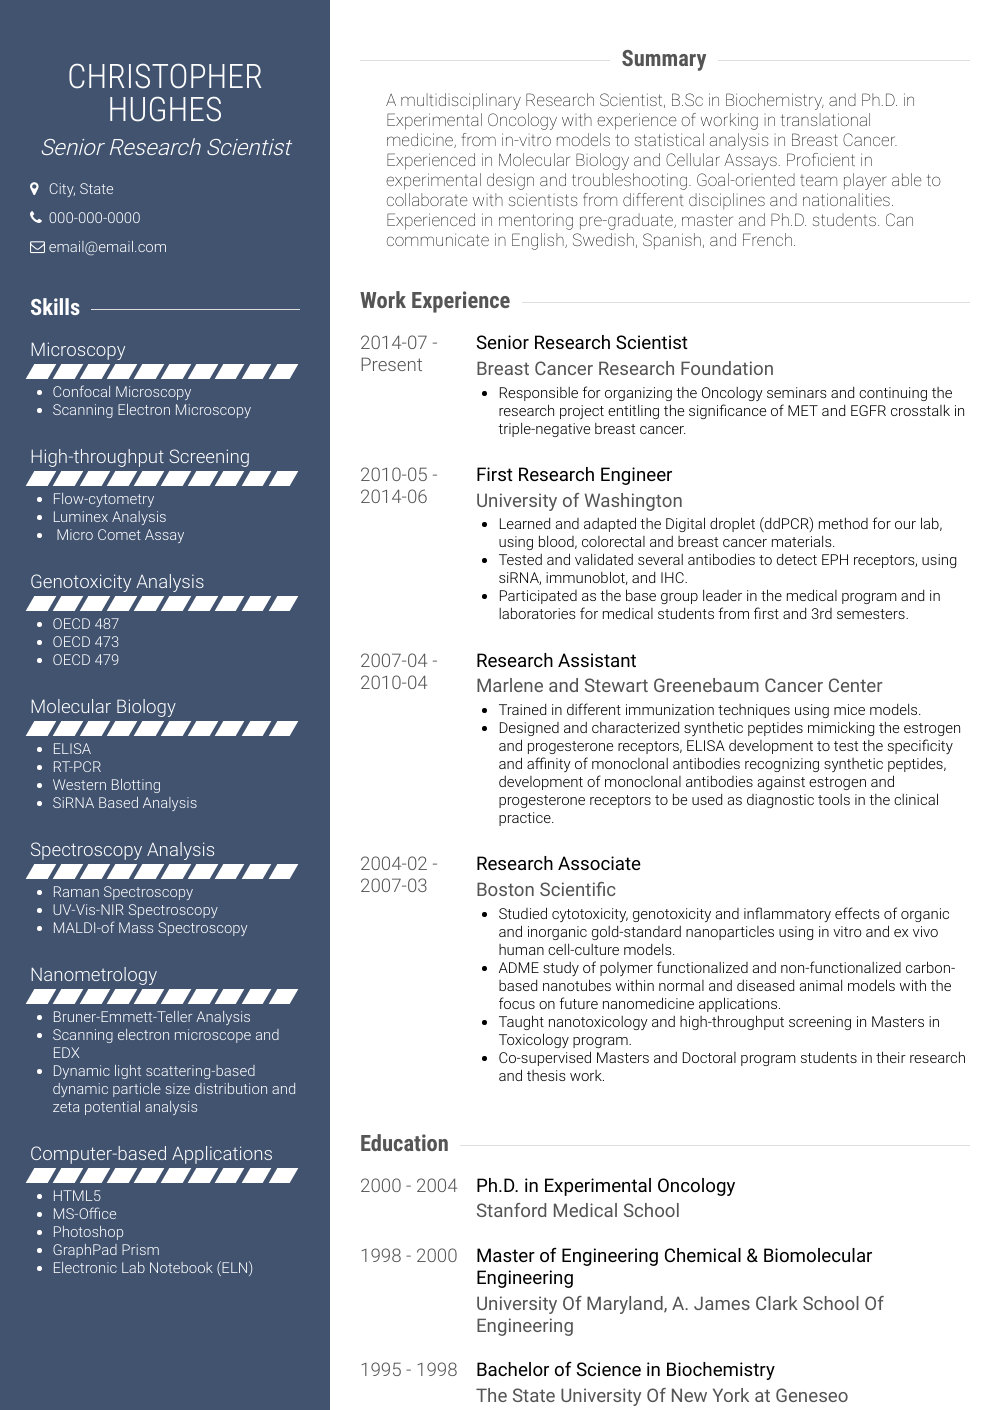 Senior Research Scientist Resume Sample and Template